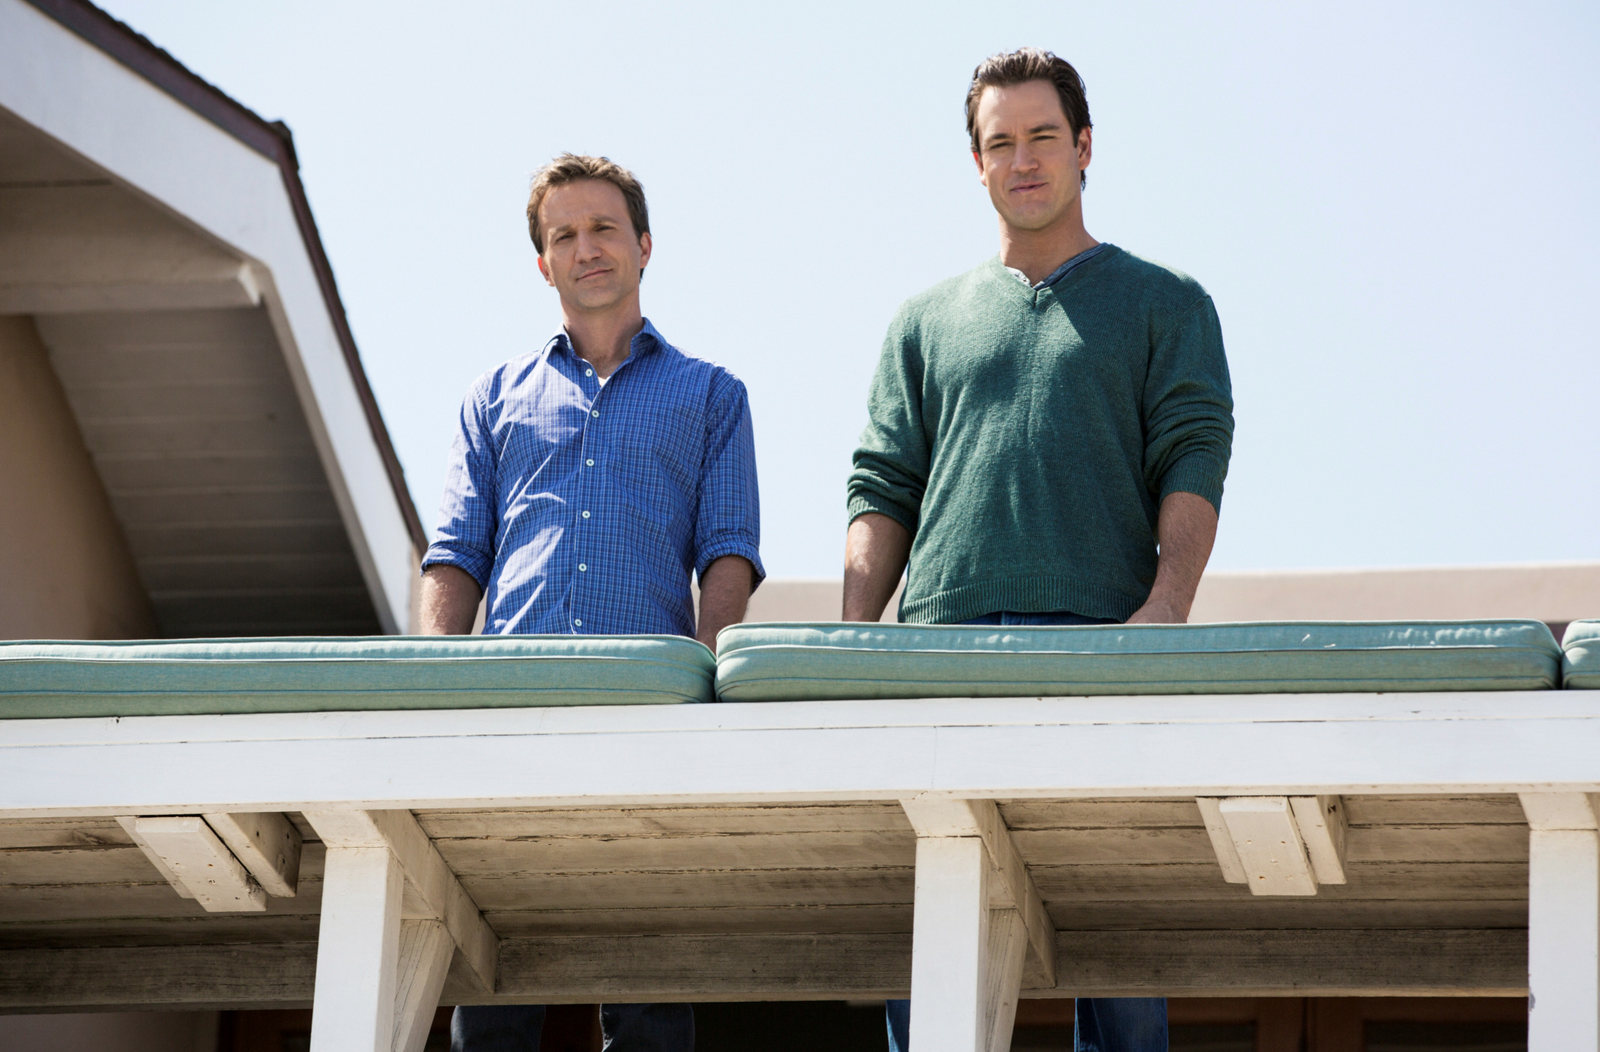 Franklin and Bash Season 3 Mark Paul Gosselaar and Breckin Meyer Franklin and Bash Take On Controntations in New Season 3 Finale Clip